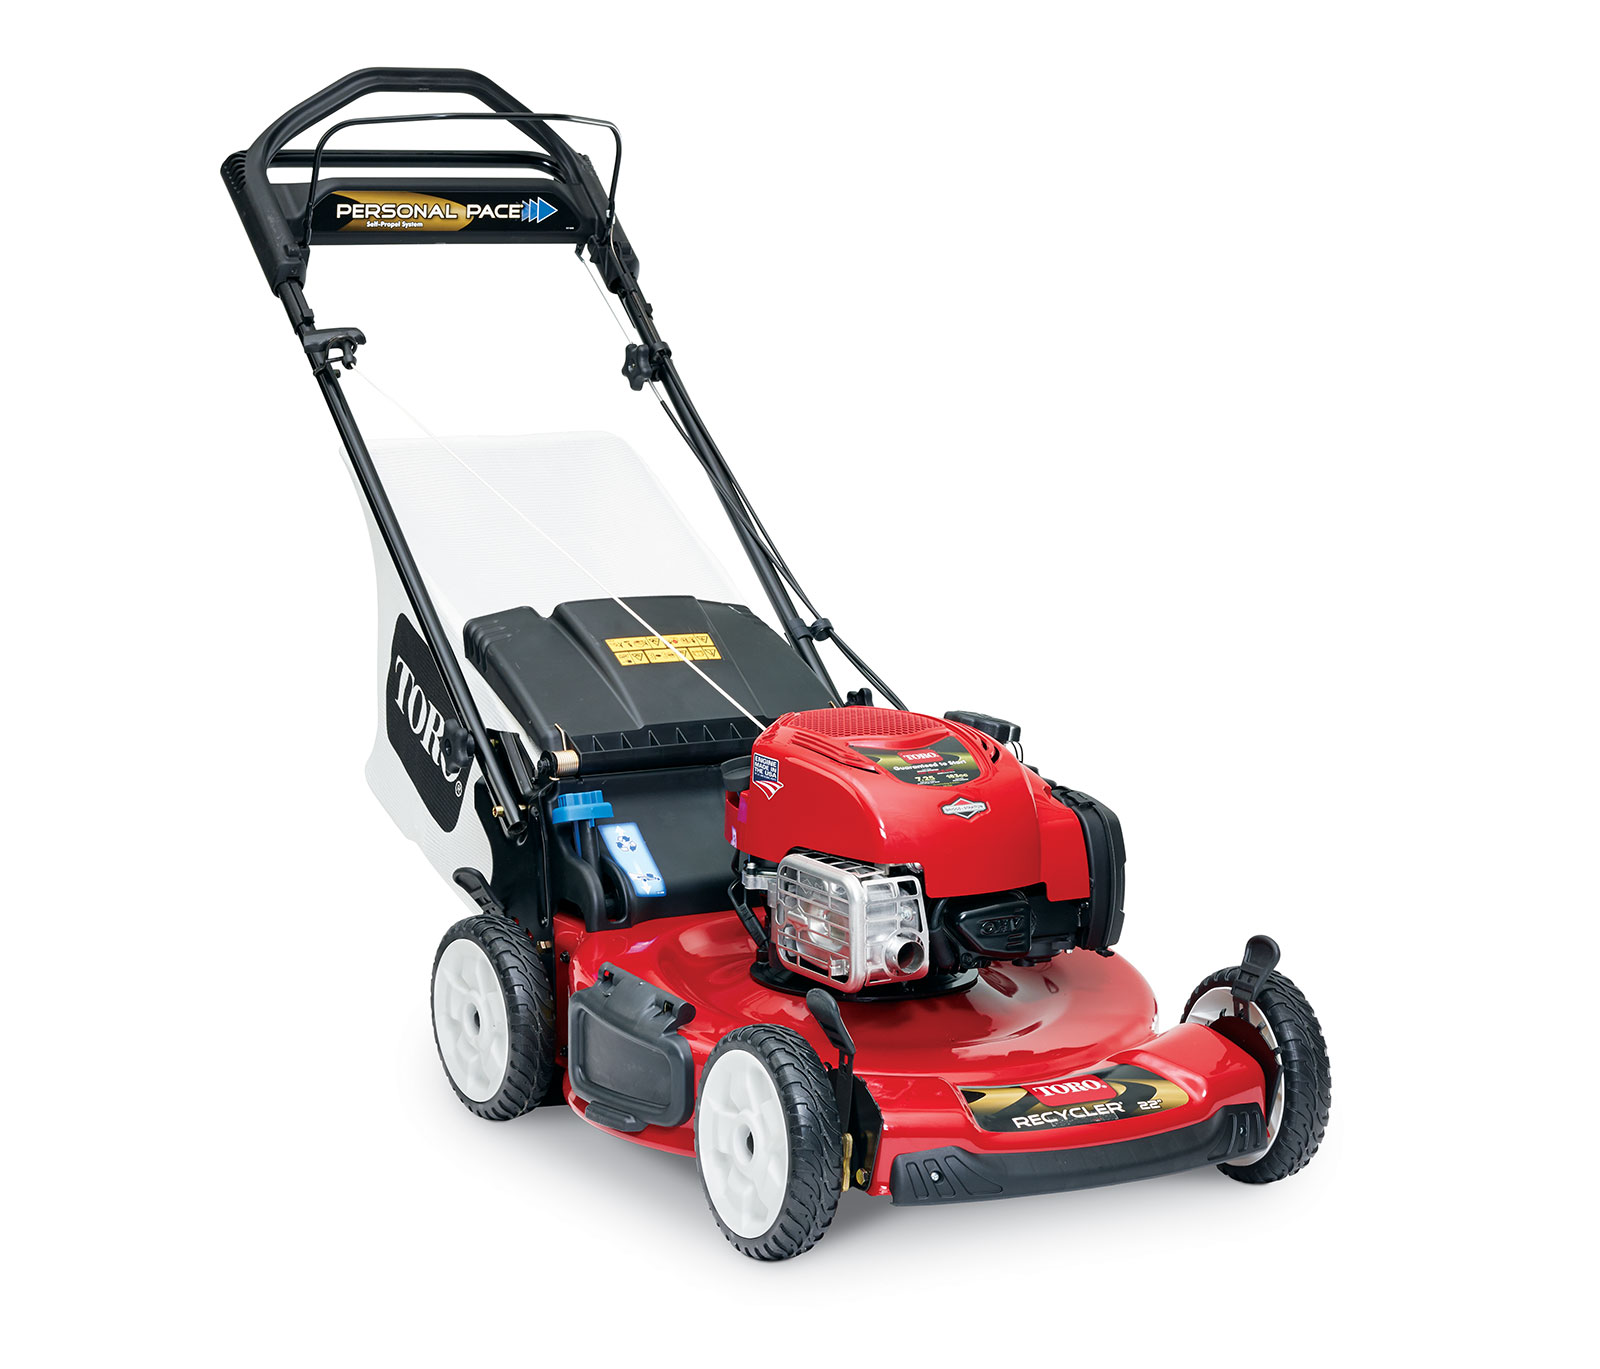 toro 22 56 cm personal pace lawn mower rh toro com toro recycler 22 manual 20070 toro recycler 22 manual 20331